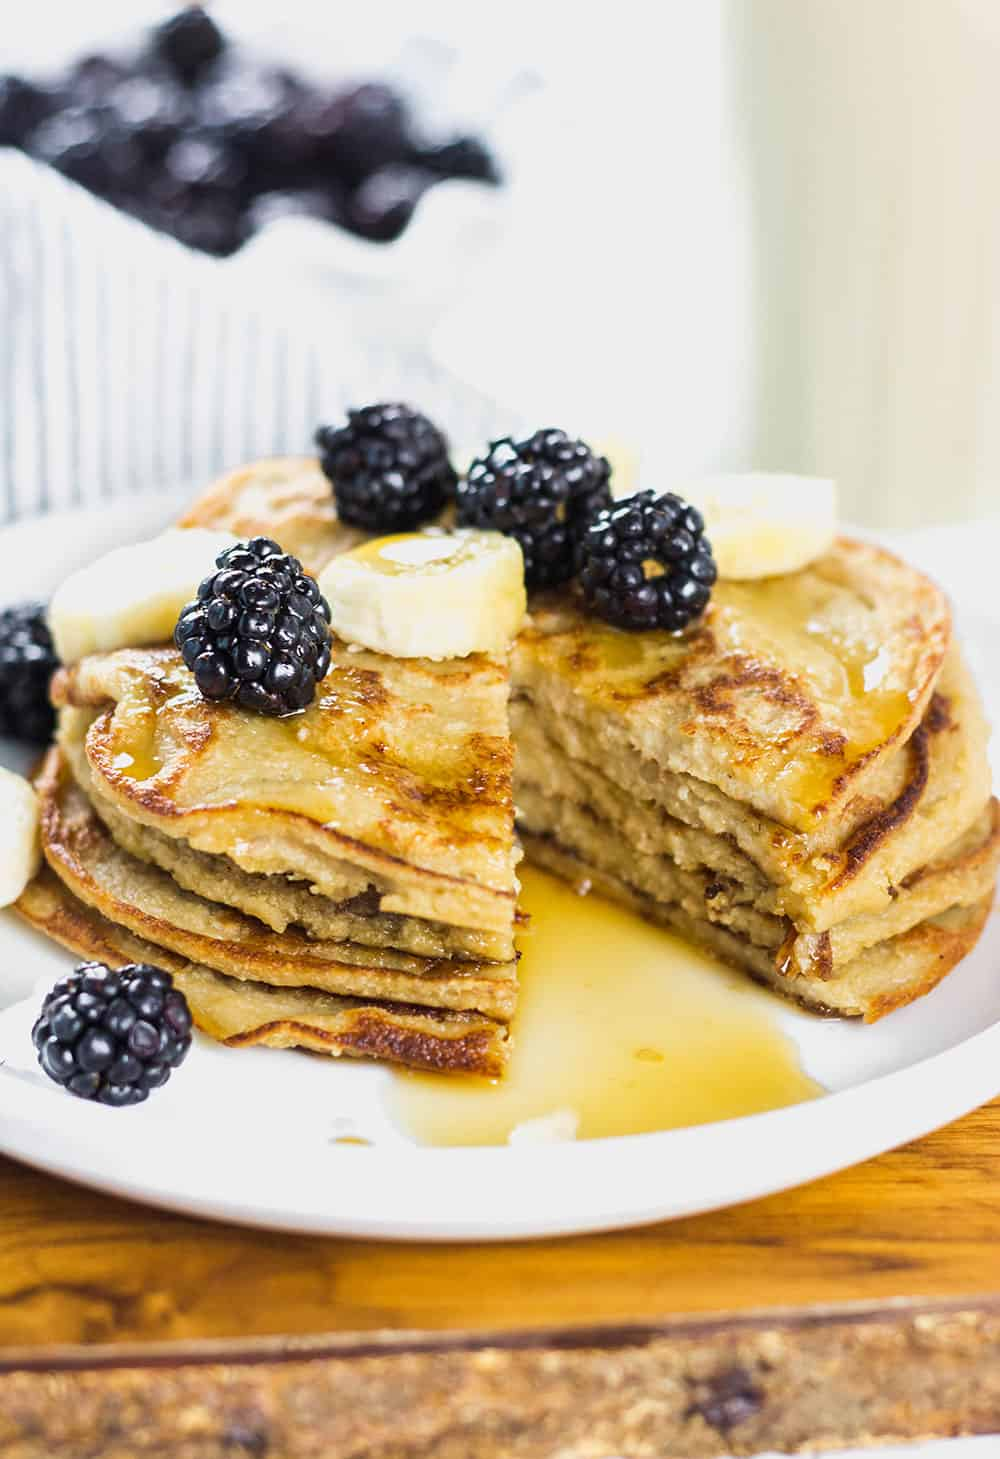 stack of pancakes with bananas, blueberries, and syrup on a white plate with a chunk cut out